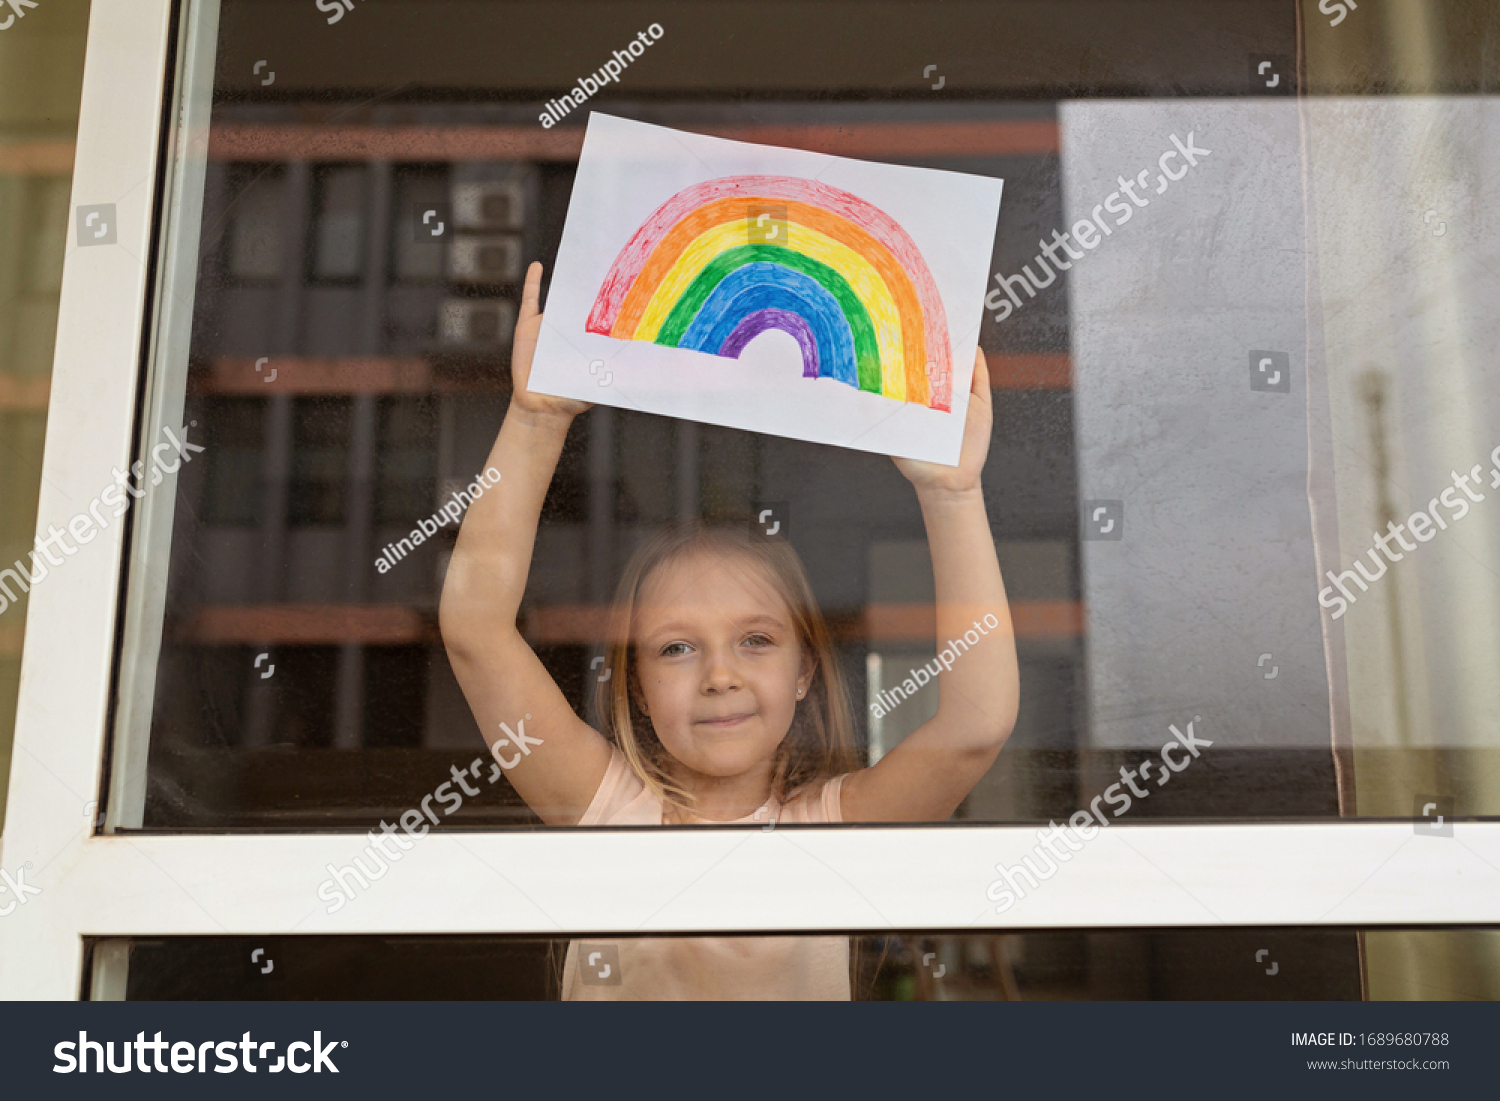 Kid painting rainbow during Covid-19 quarantine at home. Girl near window. Stay at home Social media campaign for coronavirus prevention, let's all be well, hope during coronavirus pandemic concept #1689680788